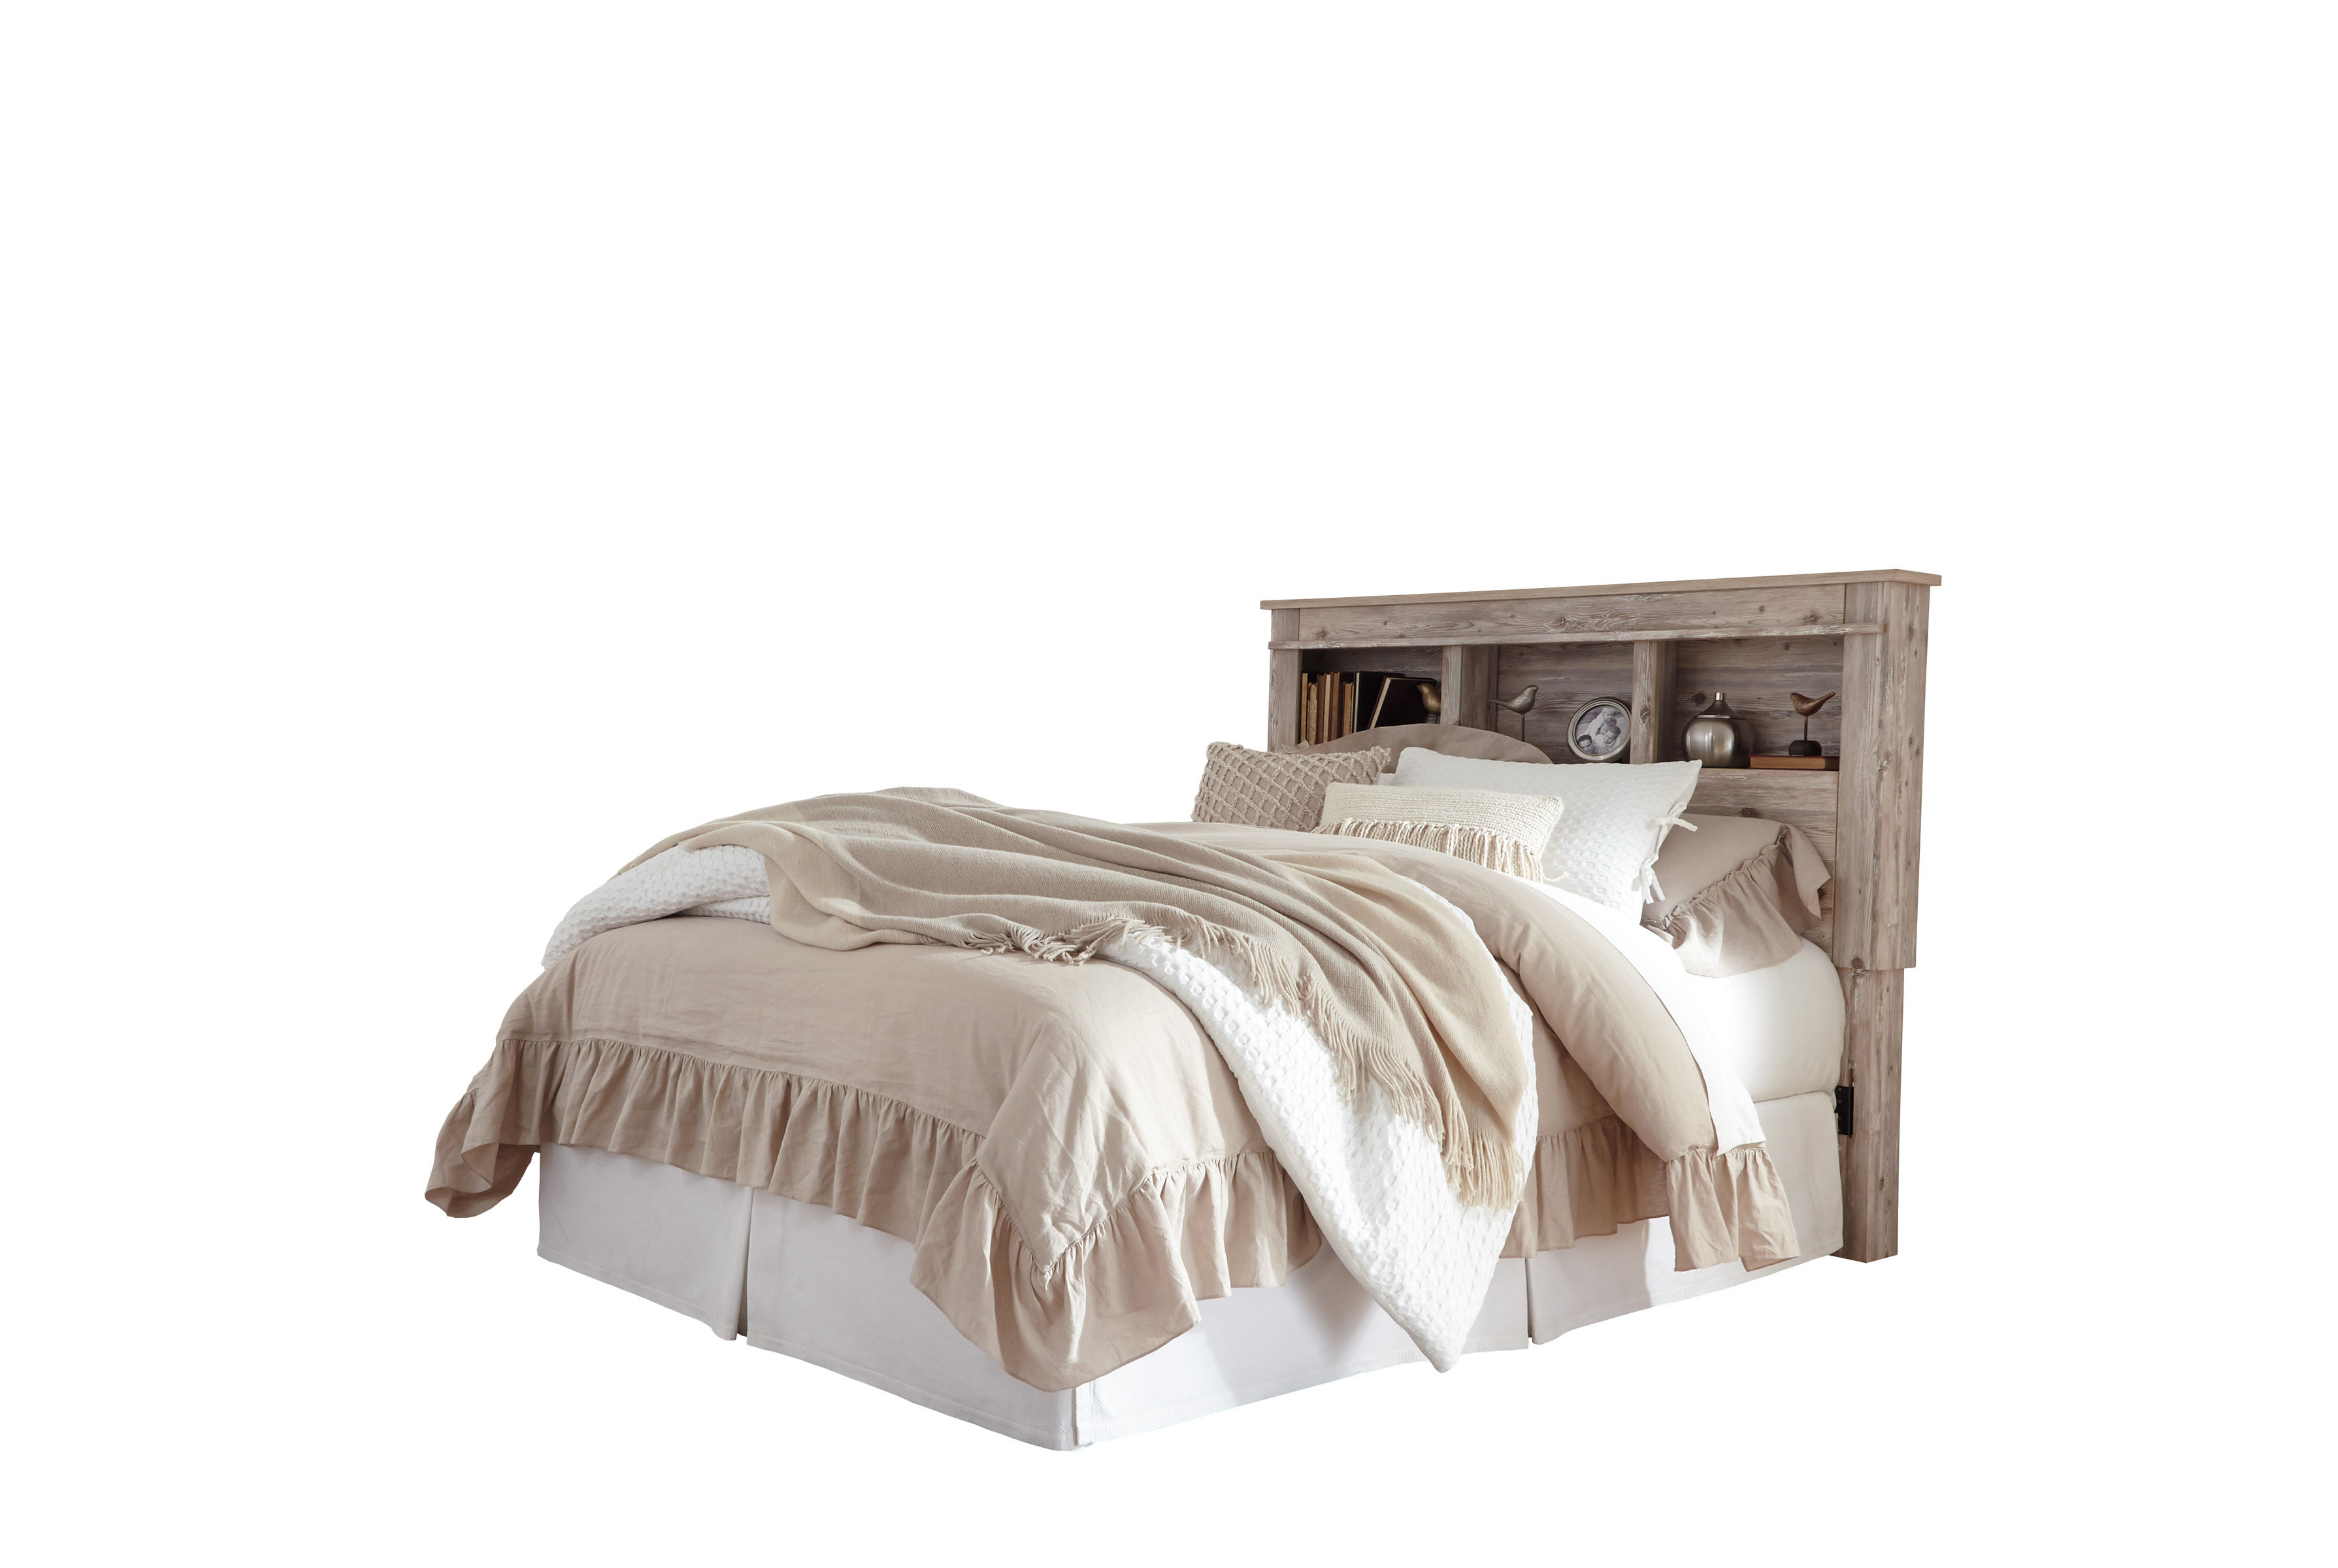 Ashley Furniture Willabry Bookcase Headboards With Bed Frame The